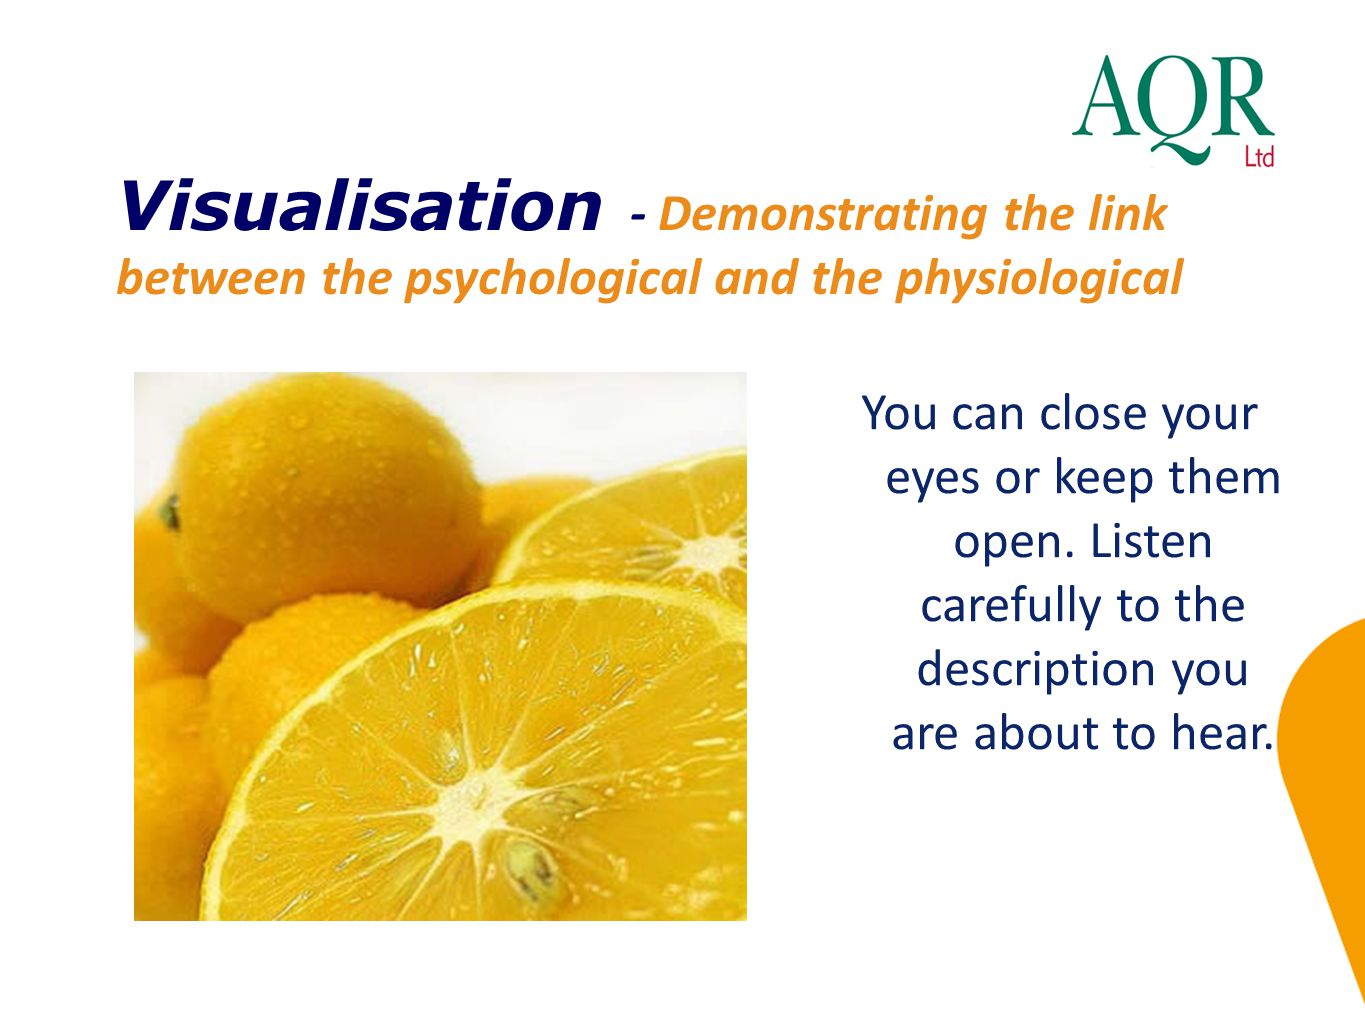 Visualisation - Demonstrating the link between the psychological and the physiological You can close your eyes or keep them open. Listen carefully to